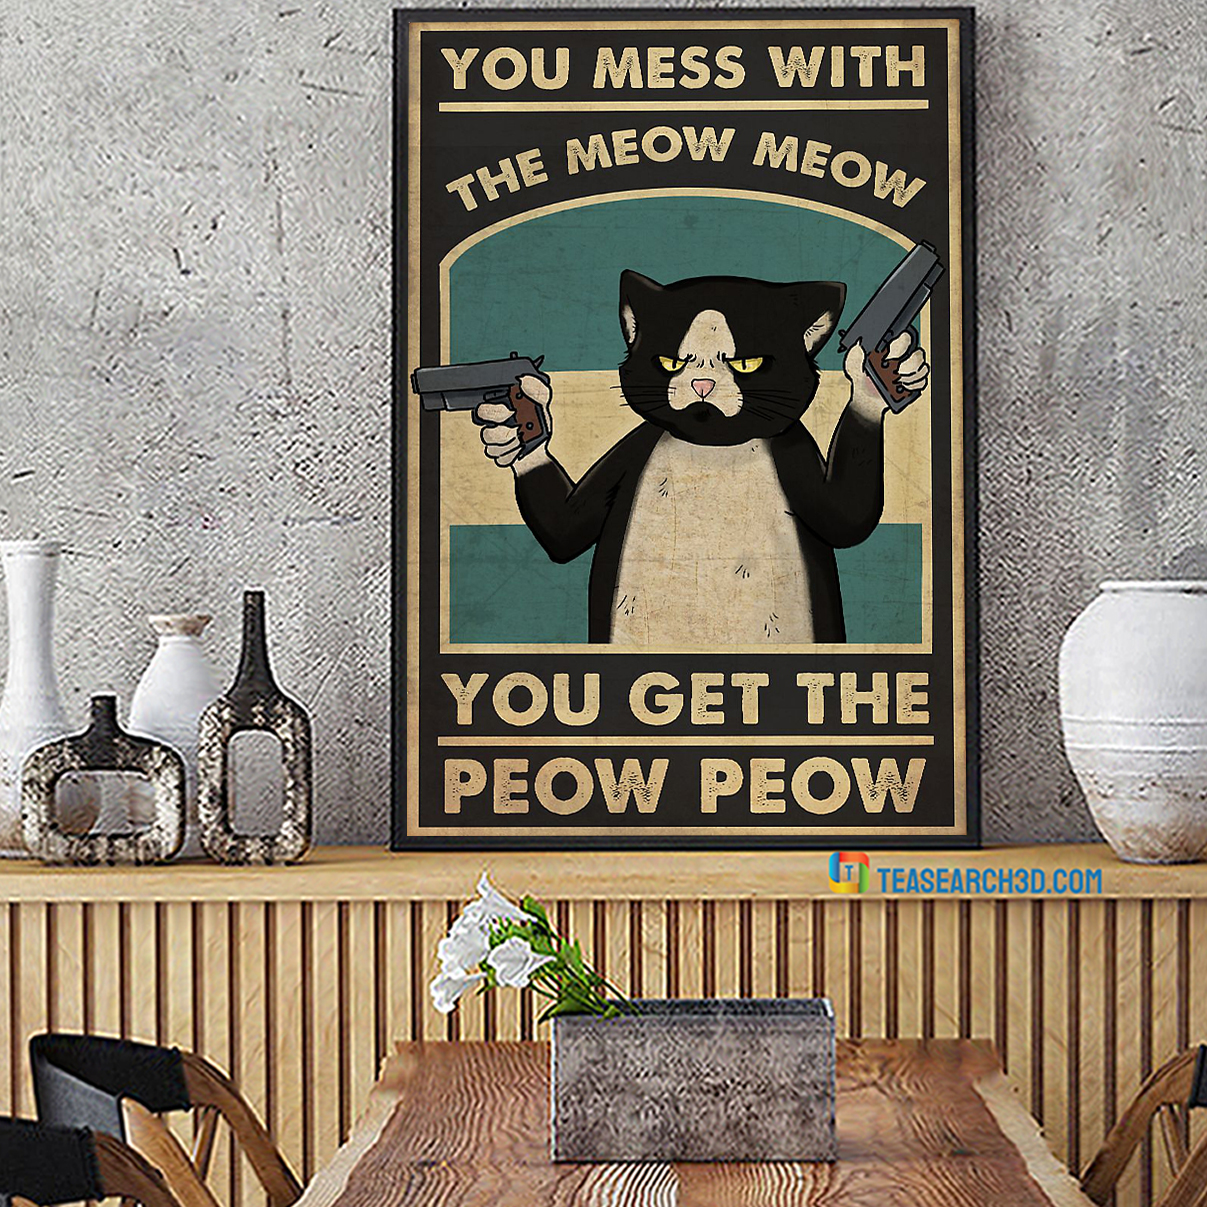 You mess with the meow meow you get the peow peow poster A4